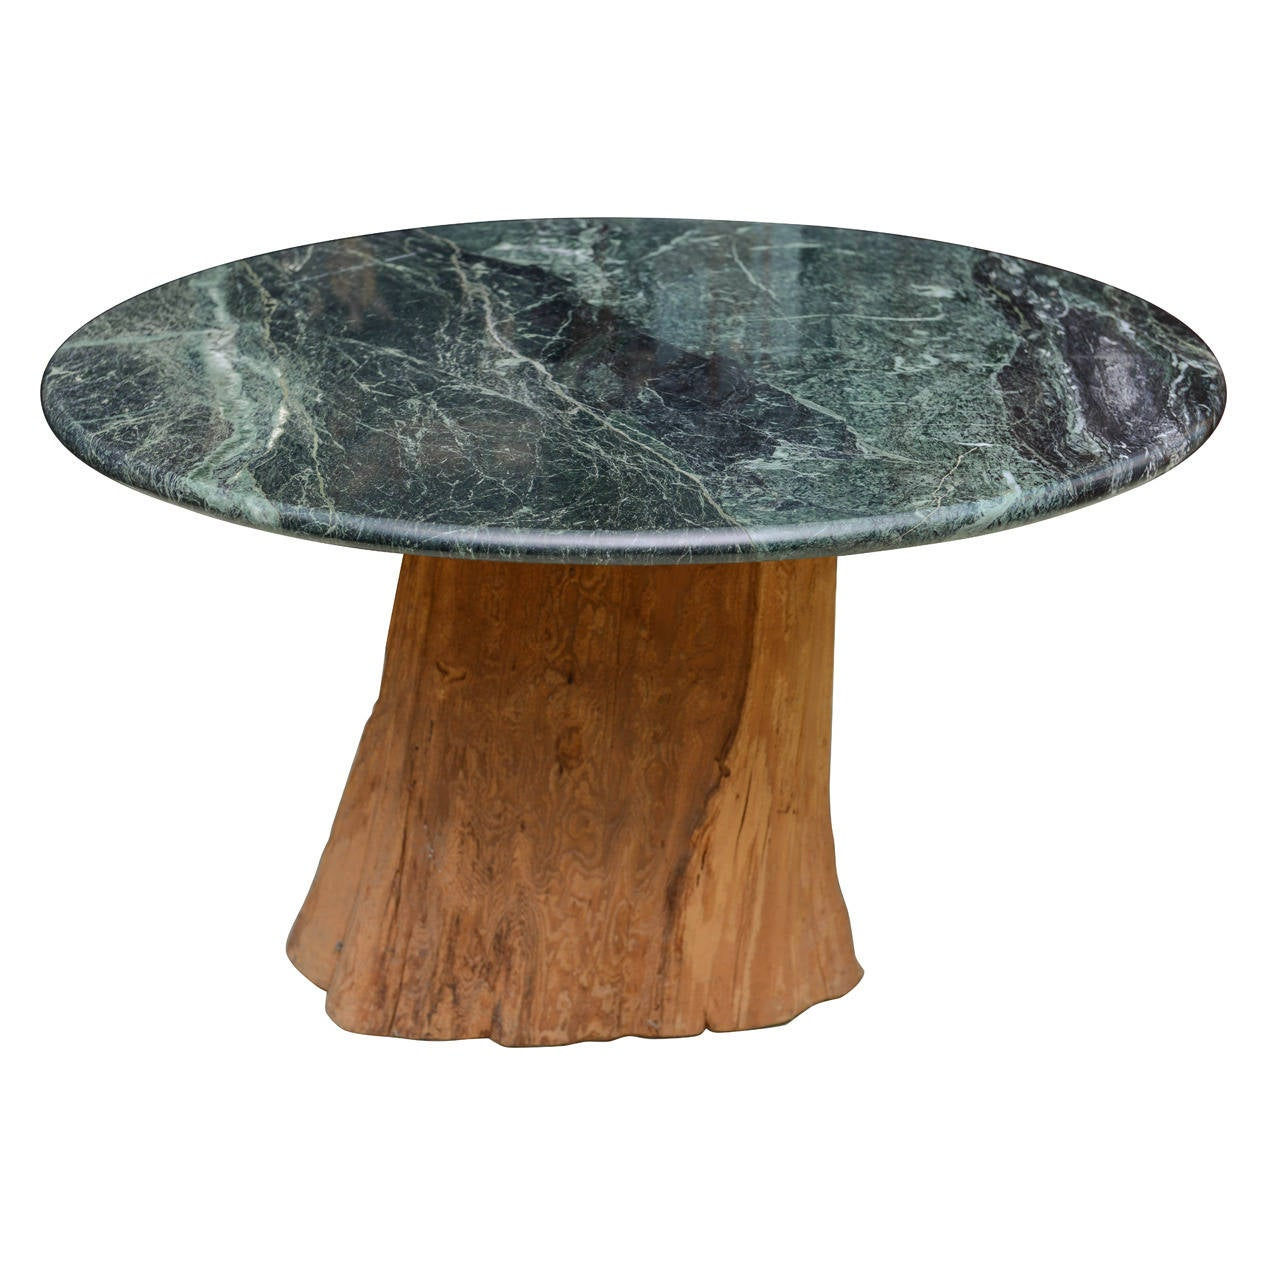 1970 Michael Taylor Specimen Organic Petrified Tree Trunk and Marble-Top Table